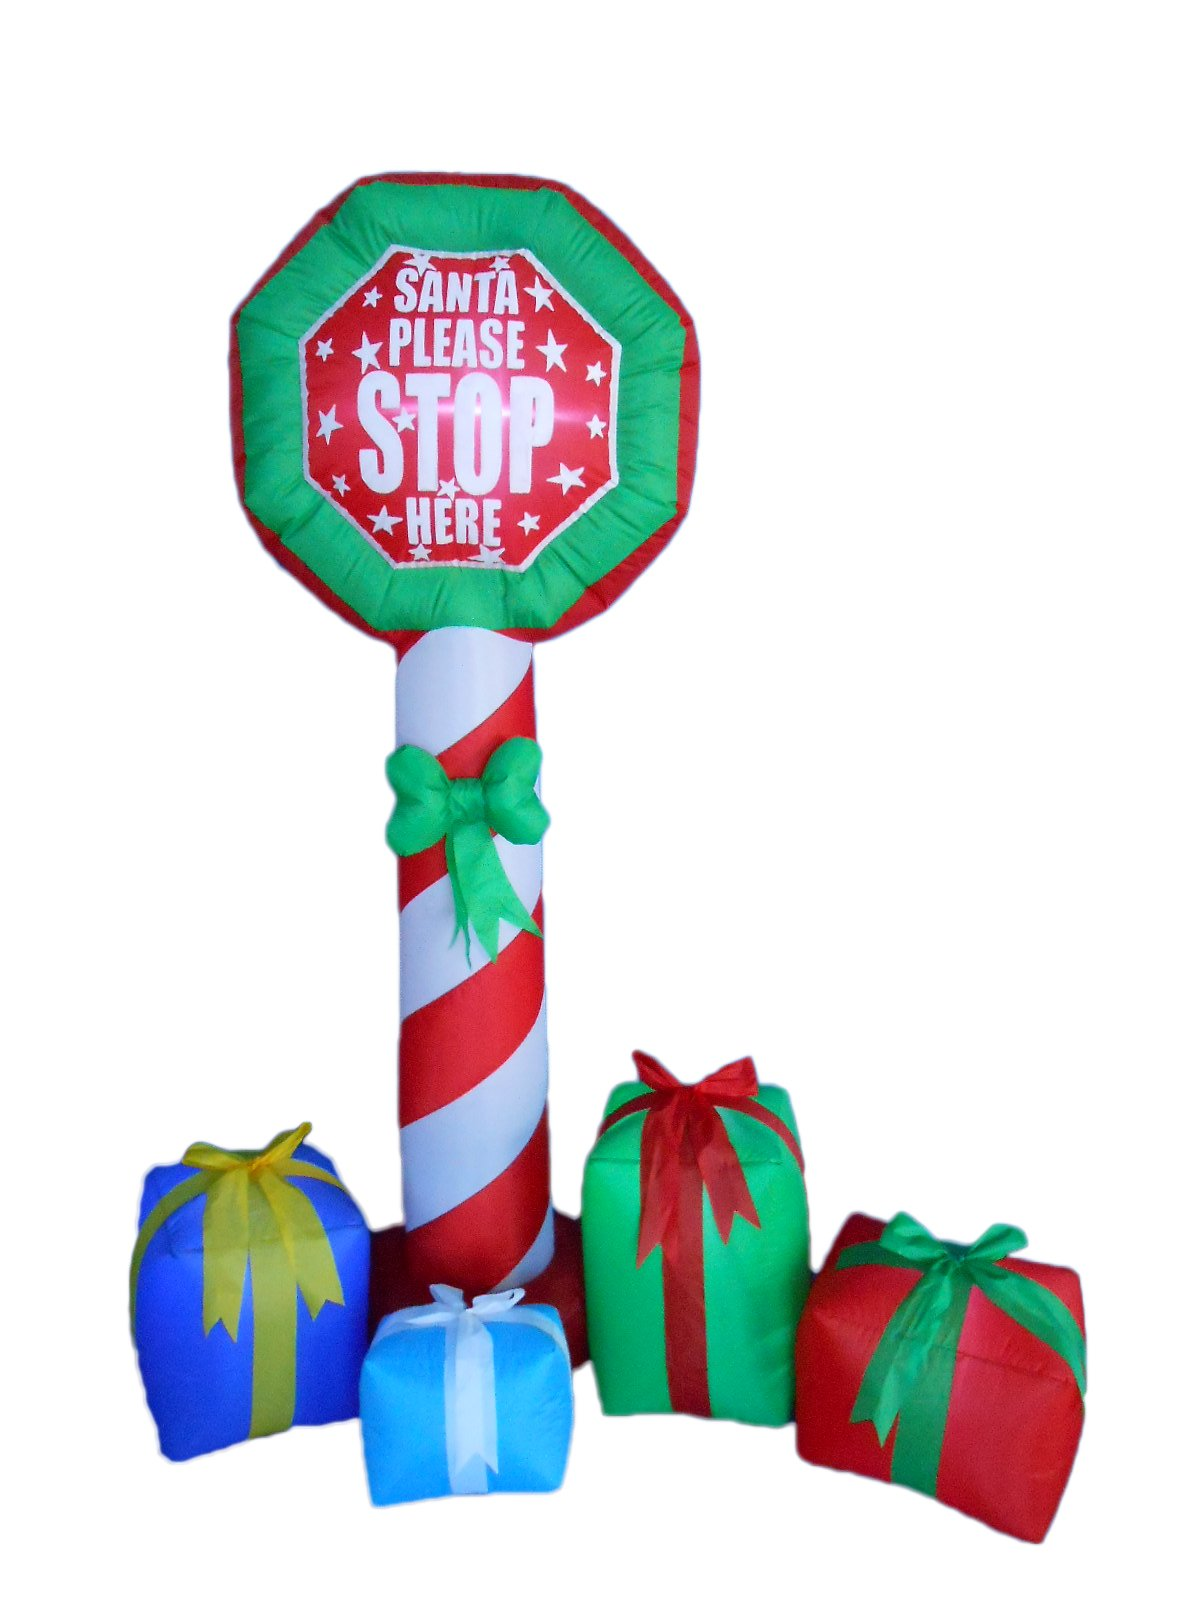 6 Foot Tall Christmas Inflatable Stop Sign Gift Boxes Yard Decoration